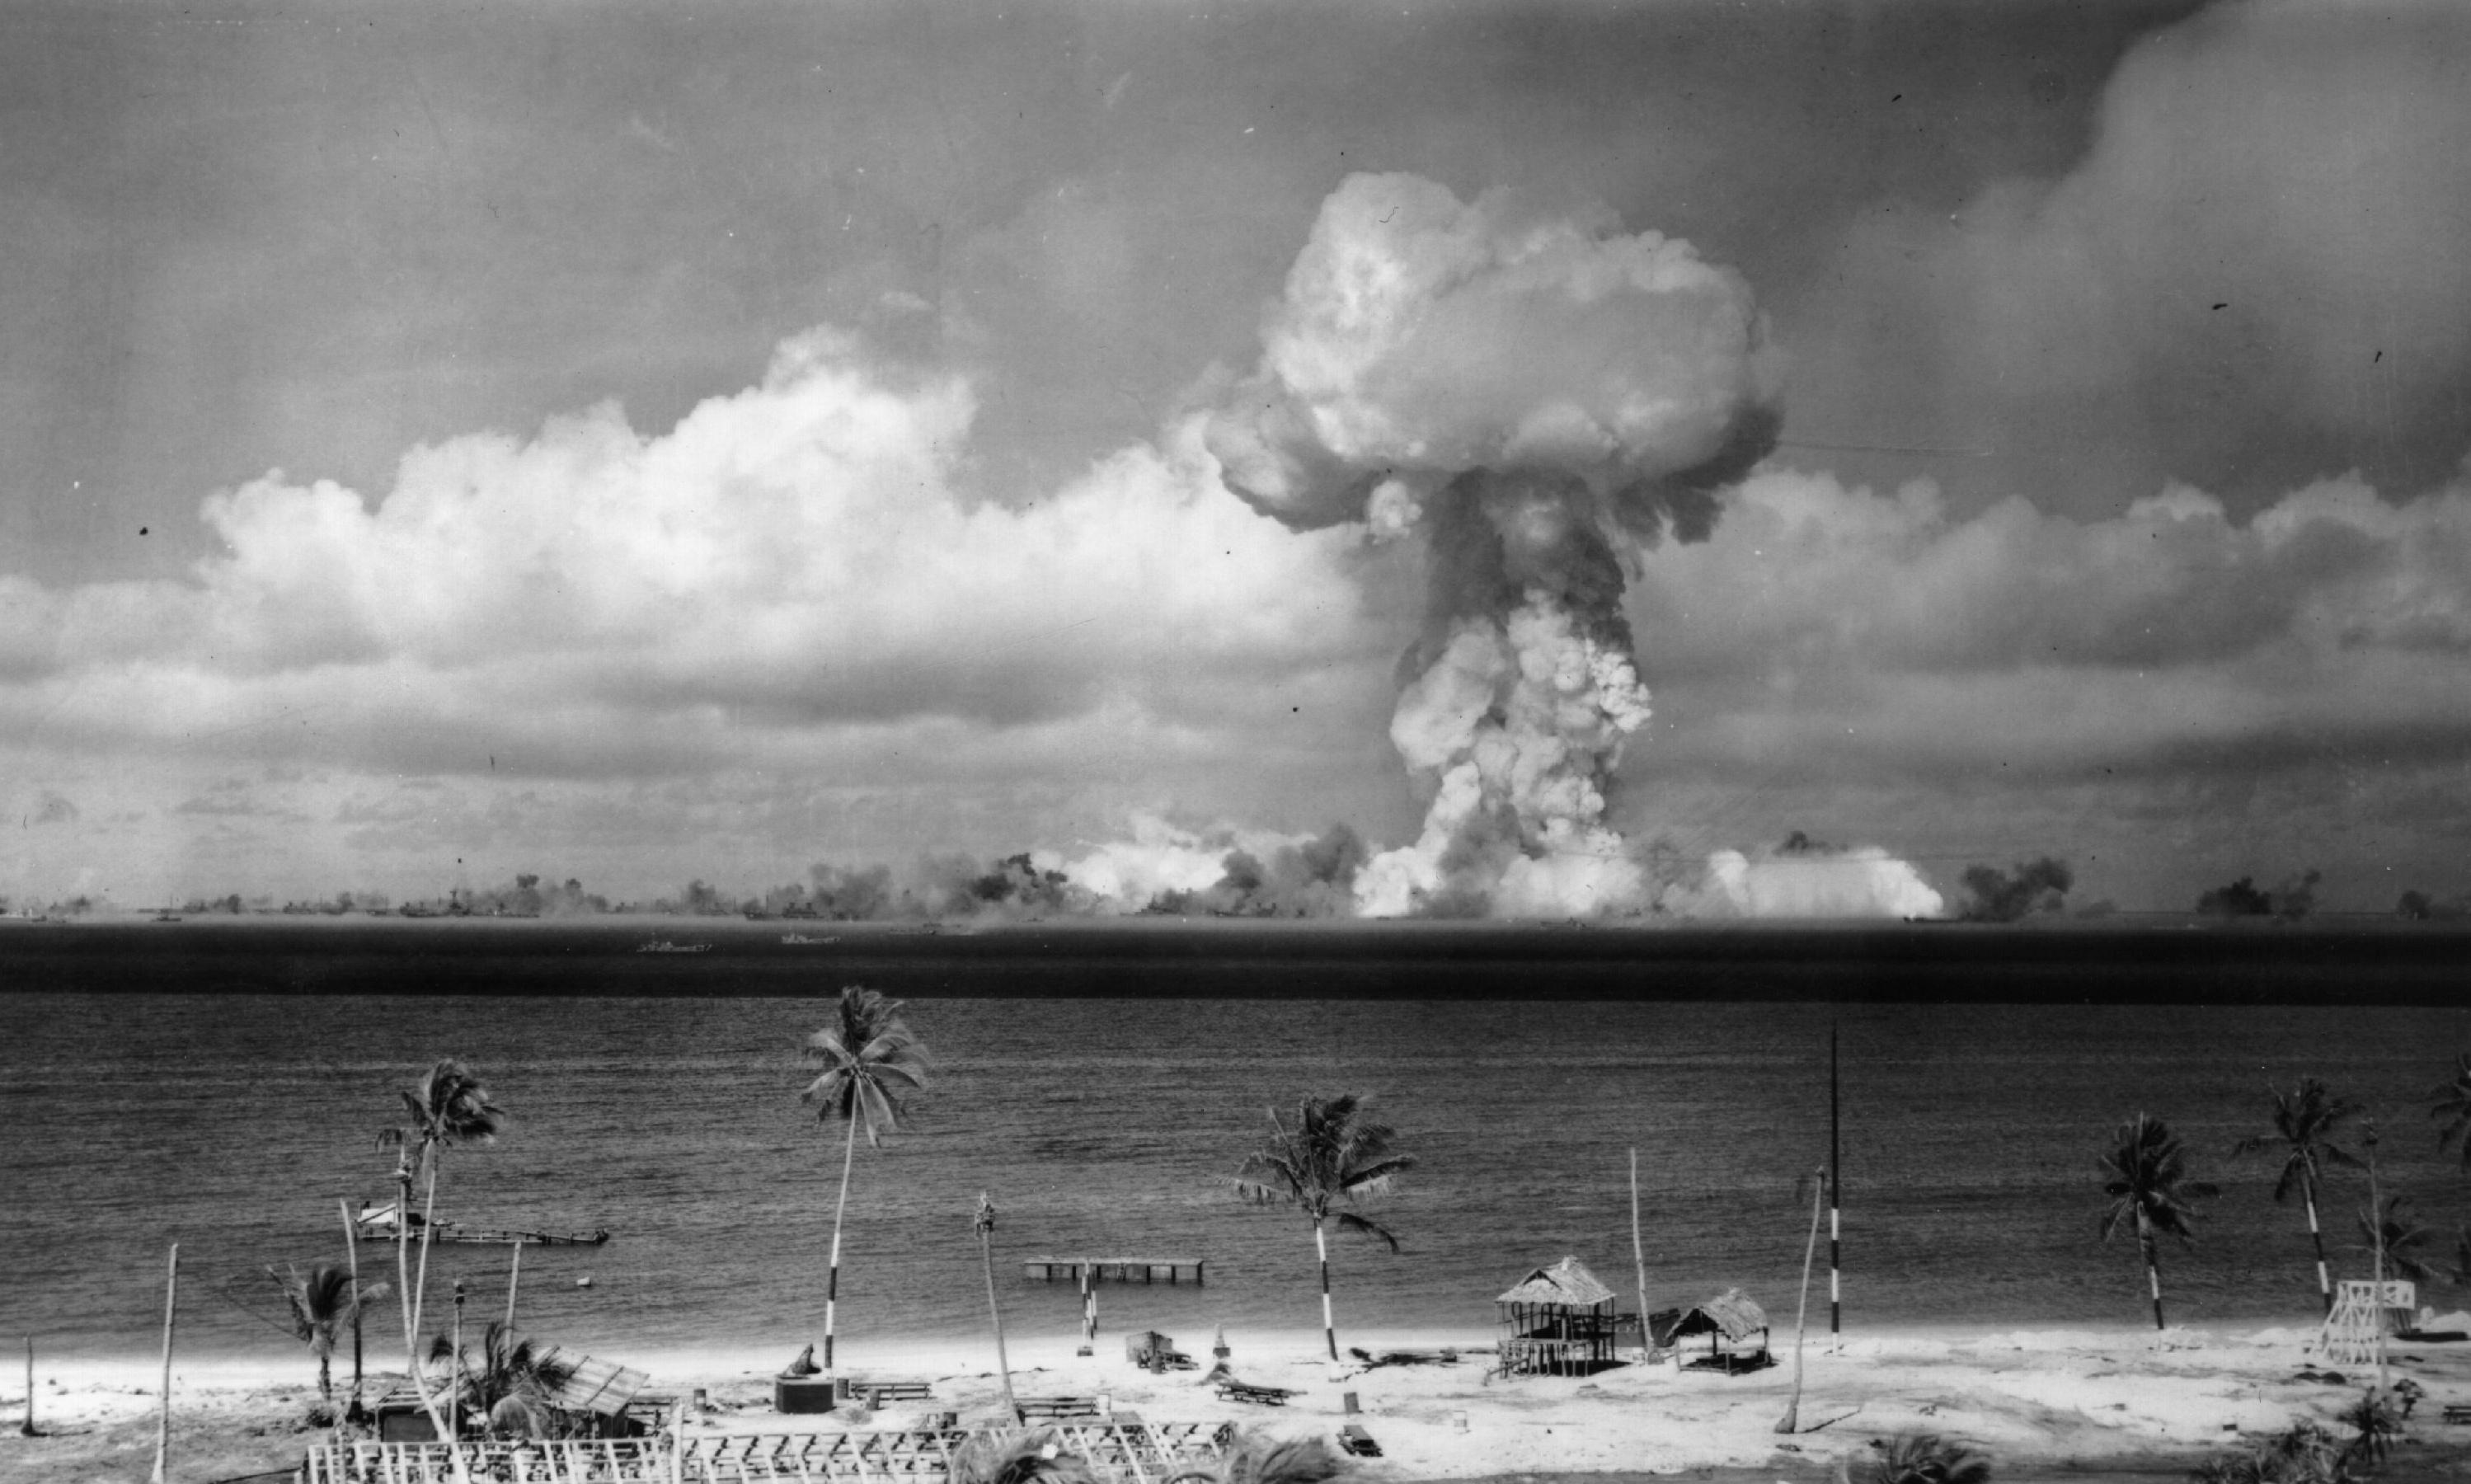 US astounded at magnitude of Bikini Atoll explosion – archive, 26 March 1954